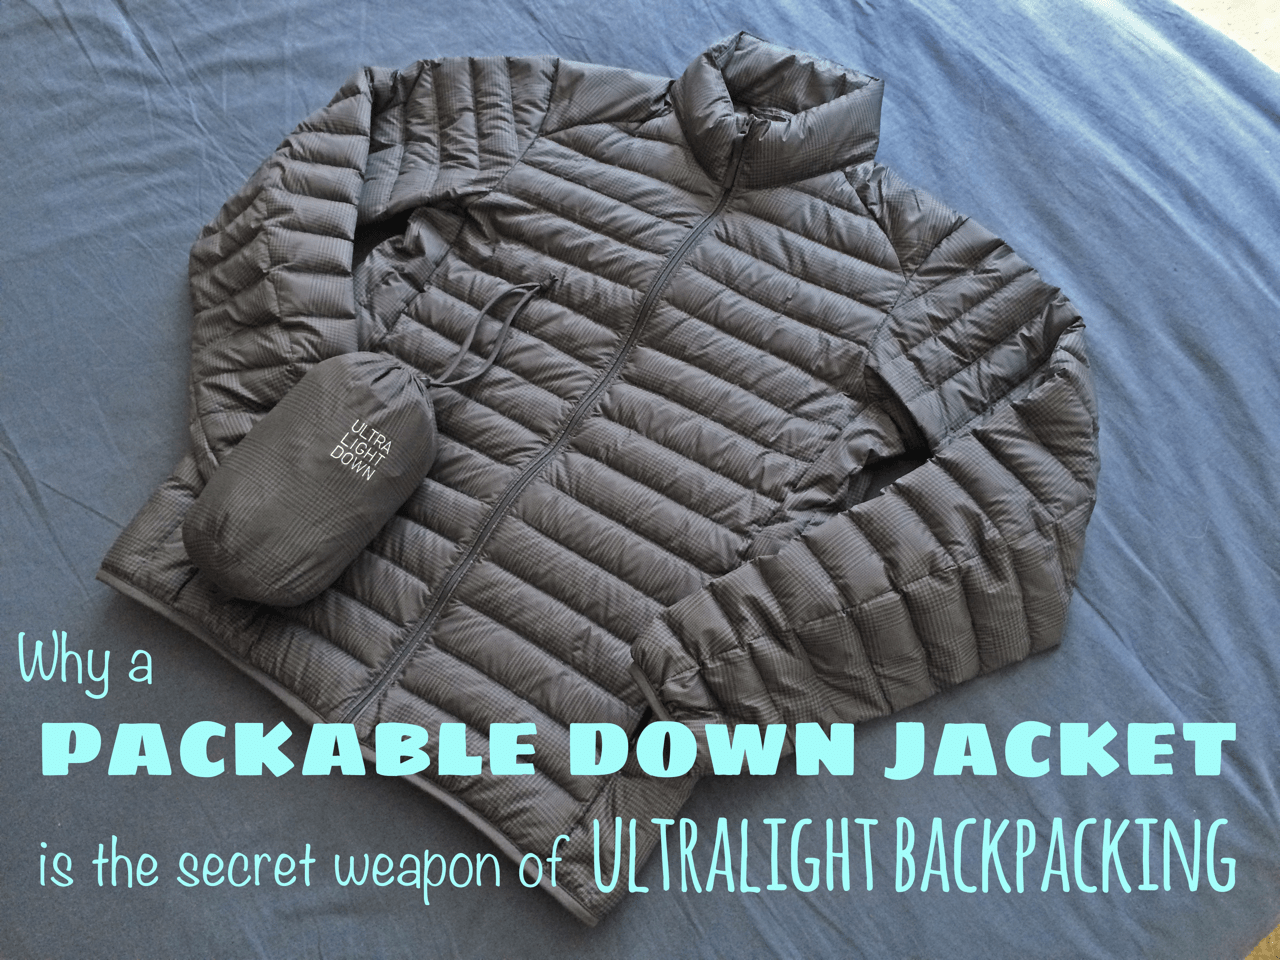 Why a packable down jacket is the secret weapon of ultralight ...